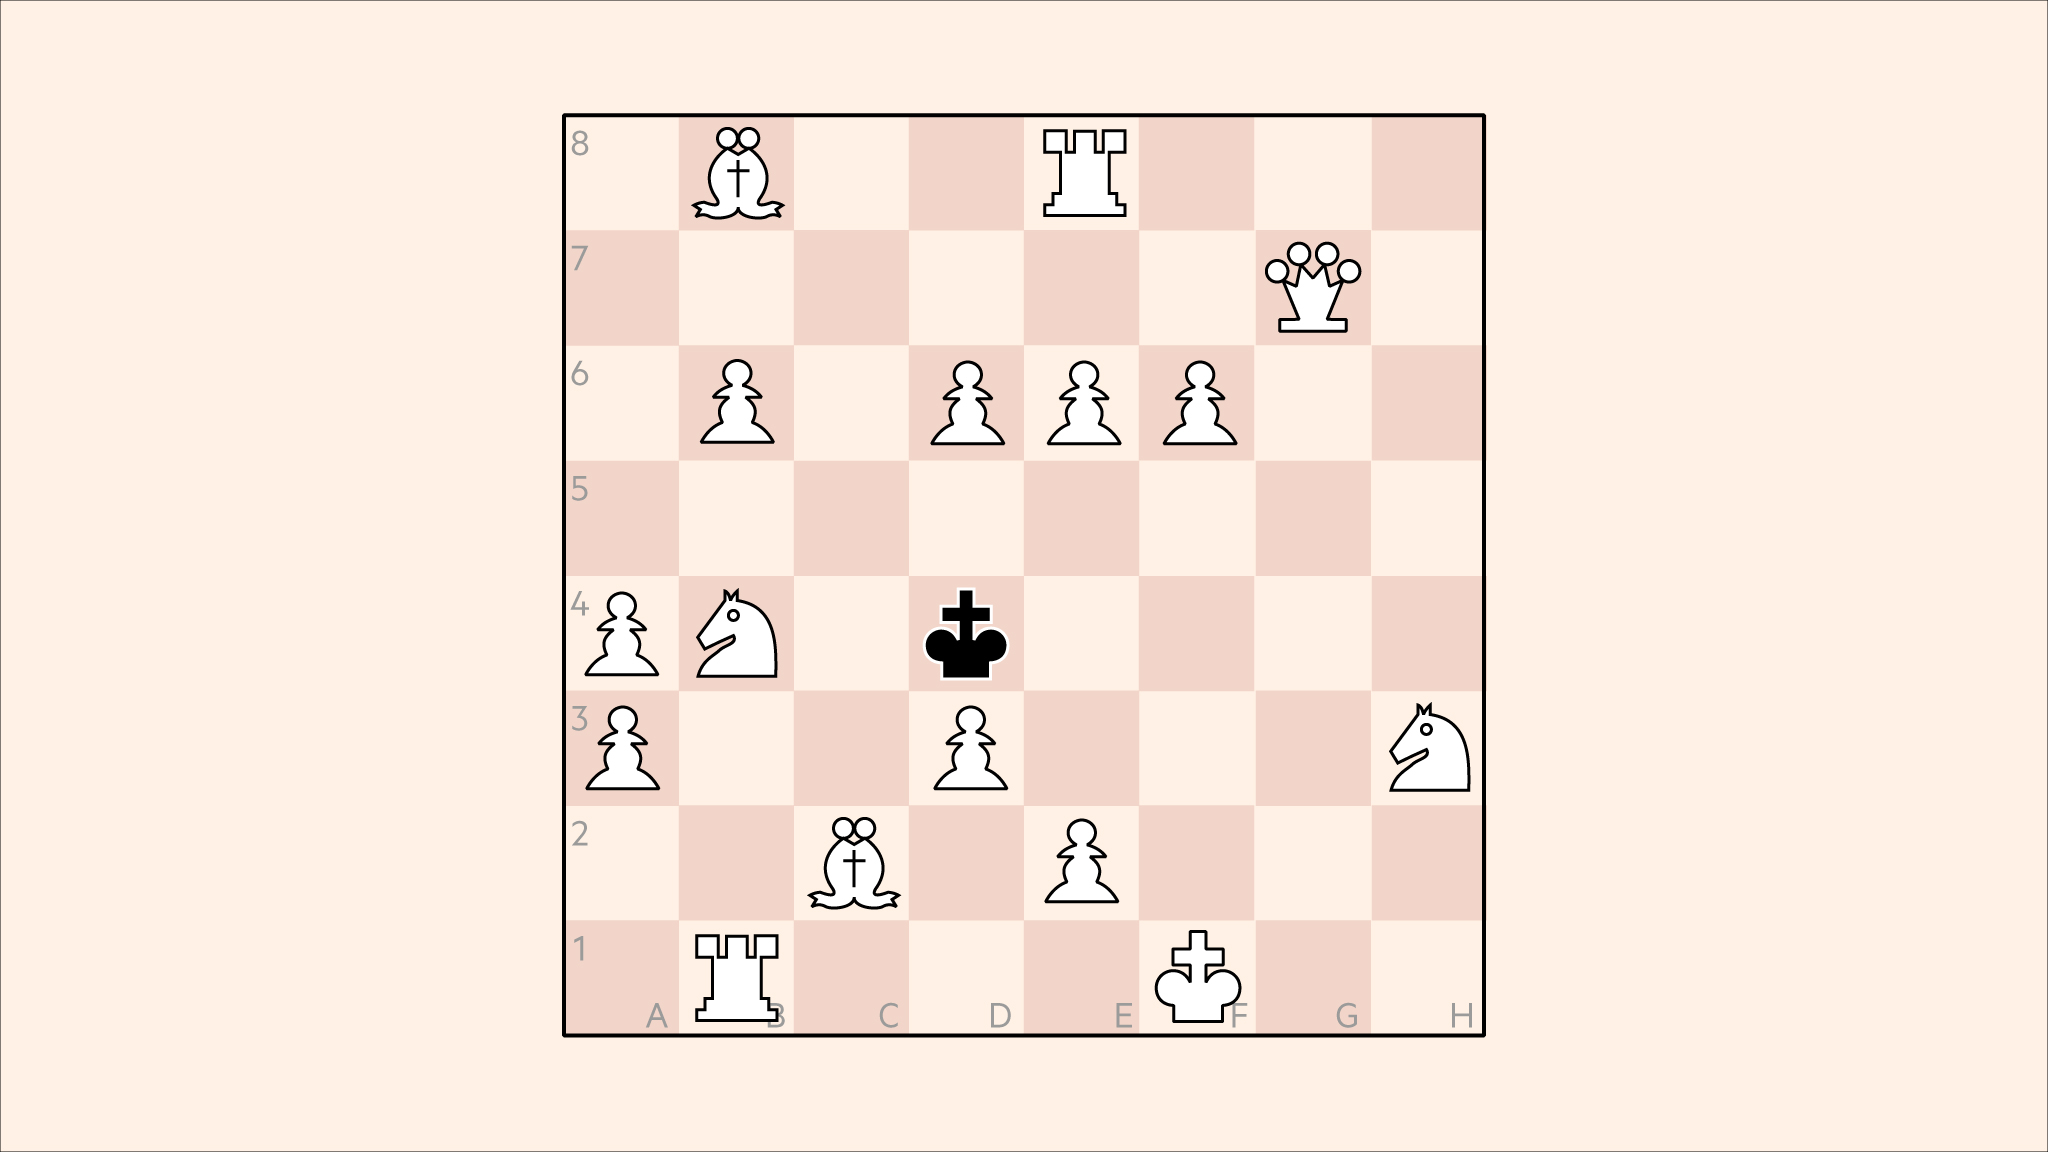 Chess: white's full full 16-man army confronts a lone black king — but where's the mate?